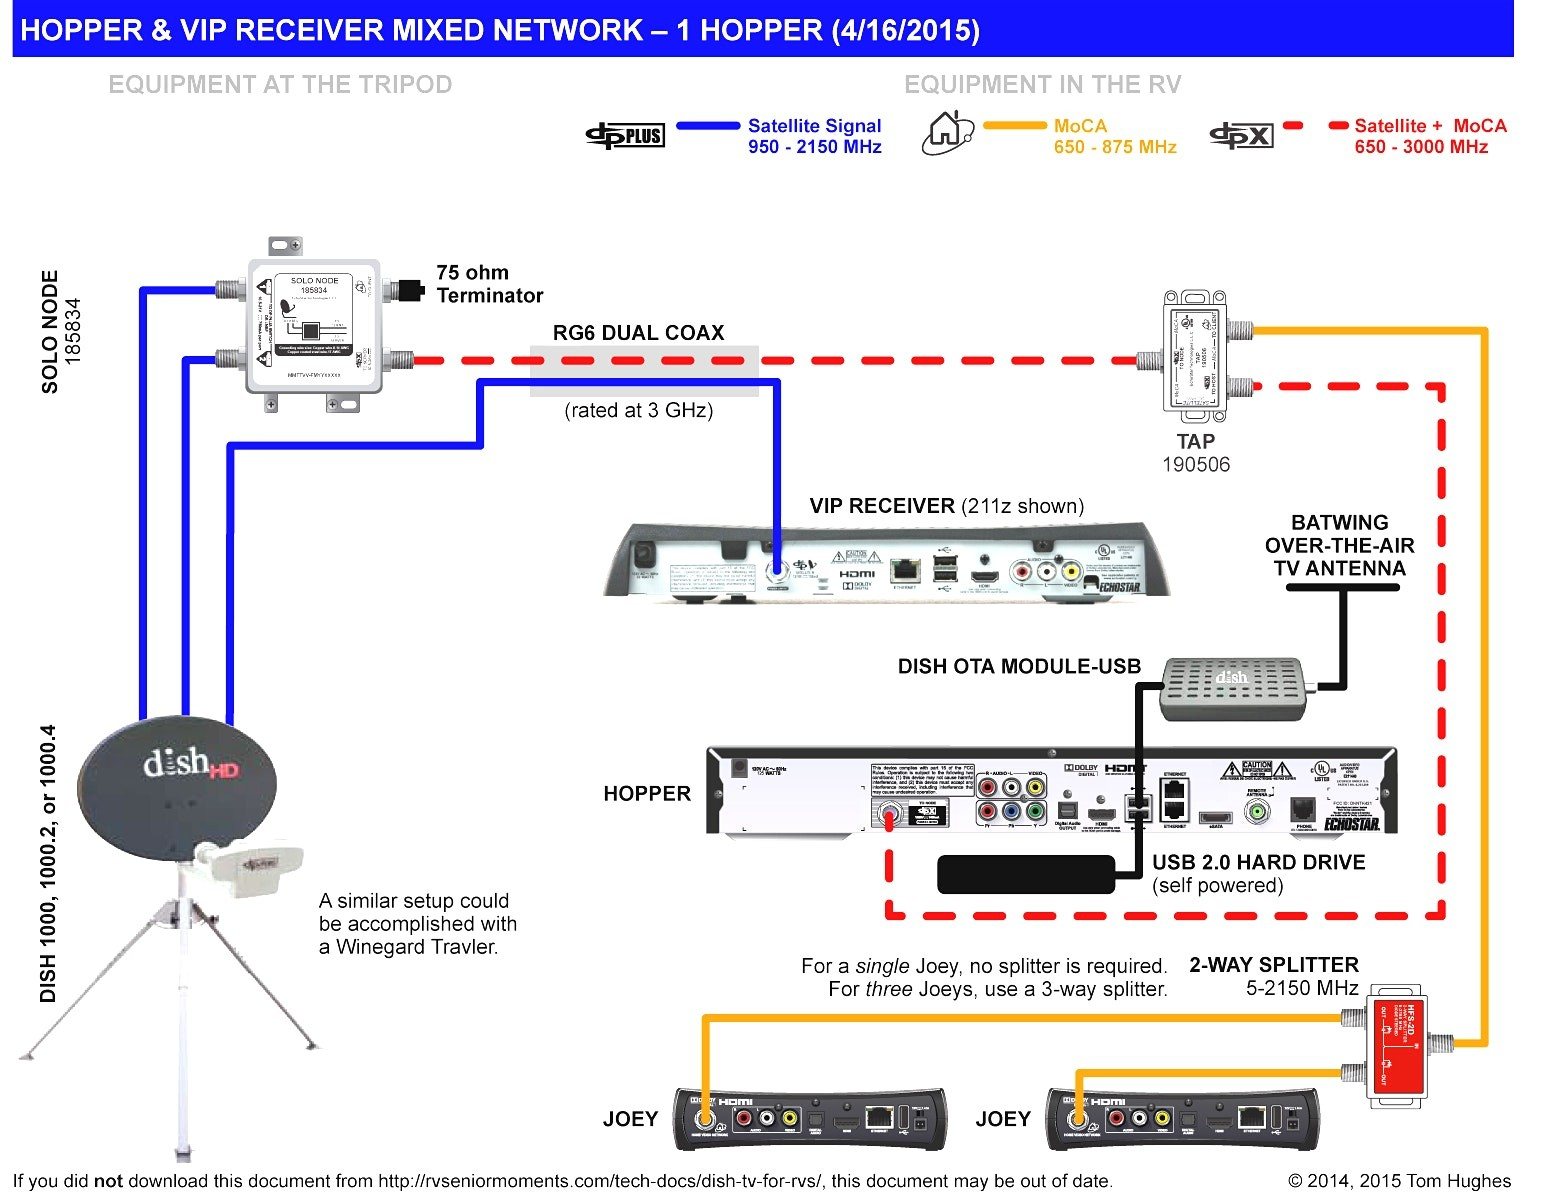 DIAGRAM] Dish Vip 222 Wiring Diagram FULL Version HD Quality Wiring Diagram  - DAYSCHEME.LEFTBLANKFORREVIEW.DEdayscheme.leftblankforreview.de